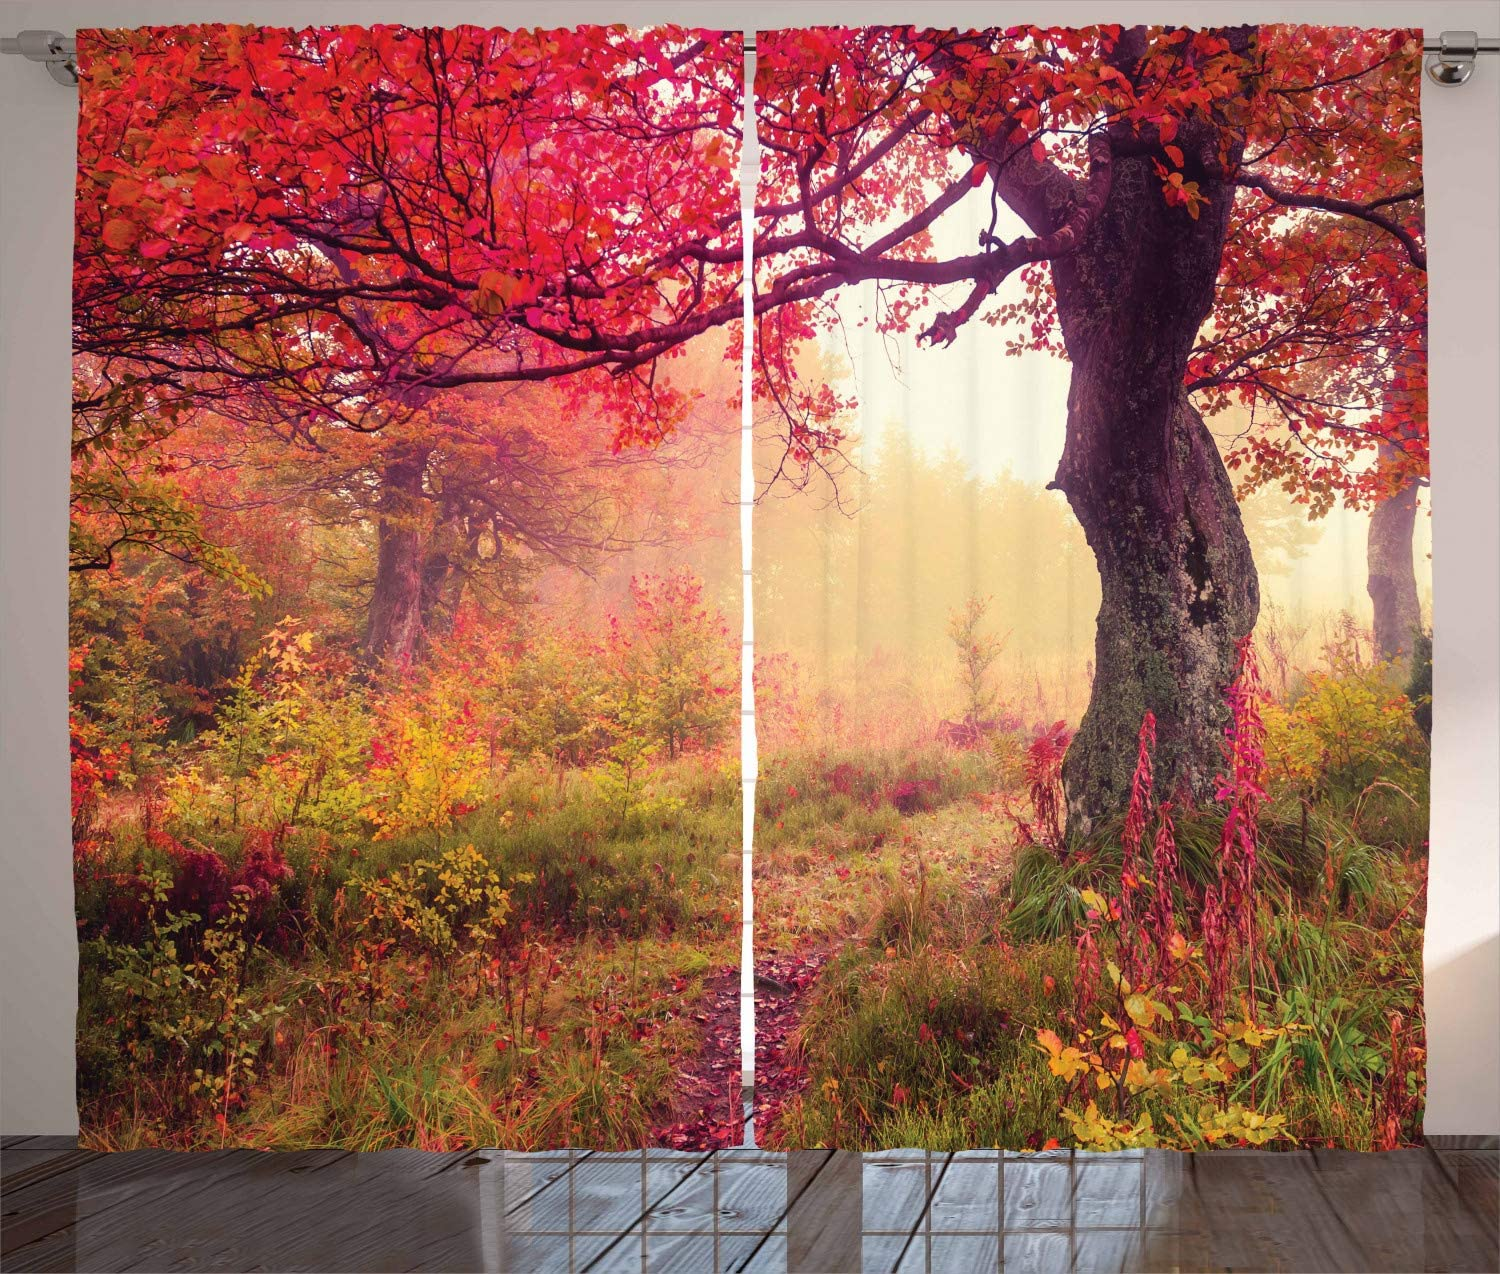 Ambesonne Landscape Curtains, Majestic Landscape with Colorful Autumn Trees Foggy Forest Ukraine Image, Living Room Bedroom Window Drapes 2 Panel Set, 108